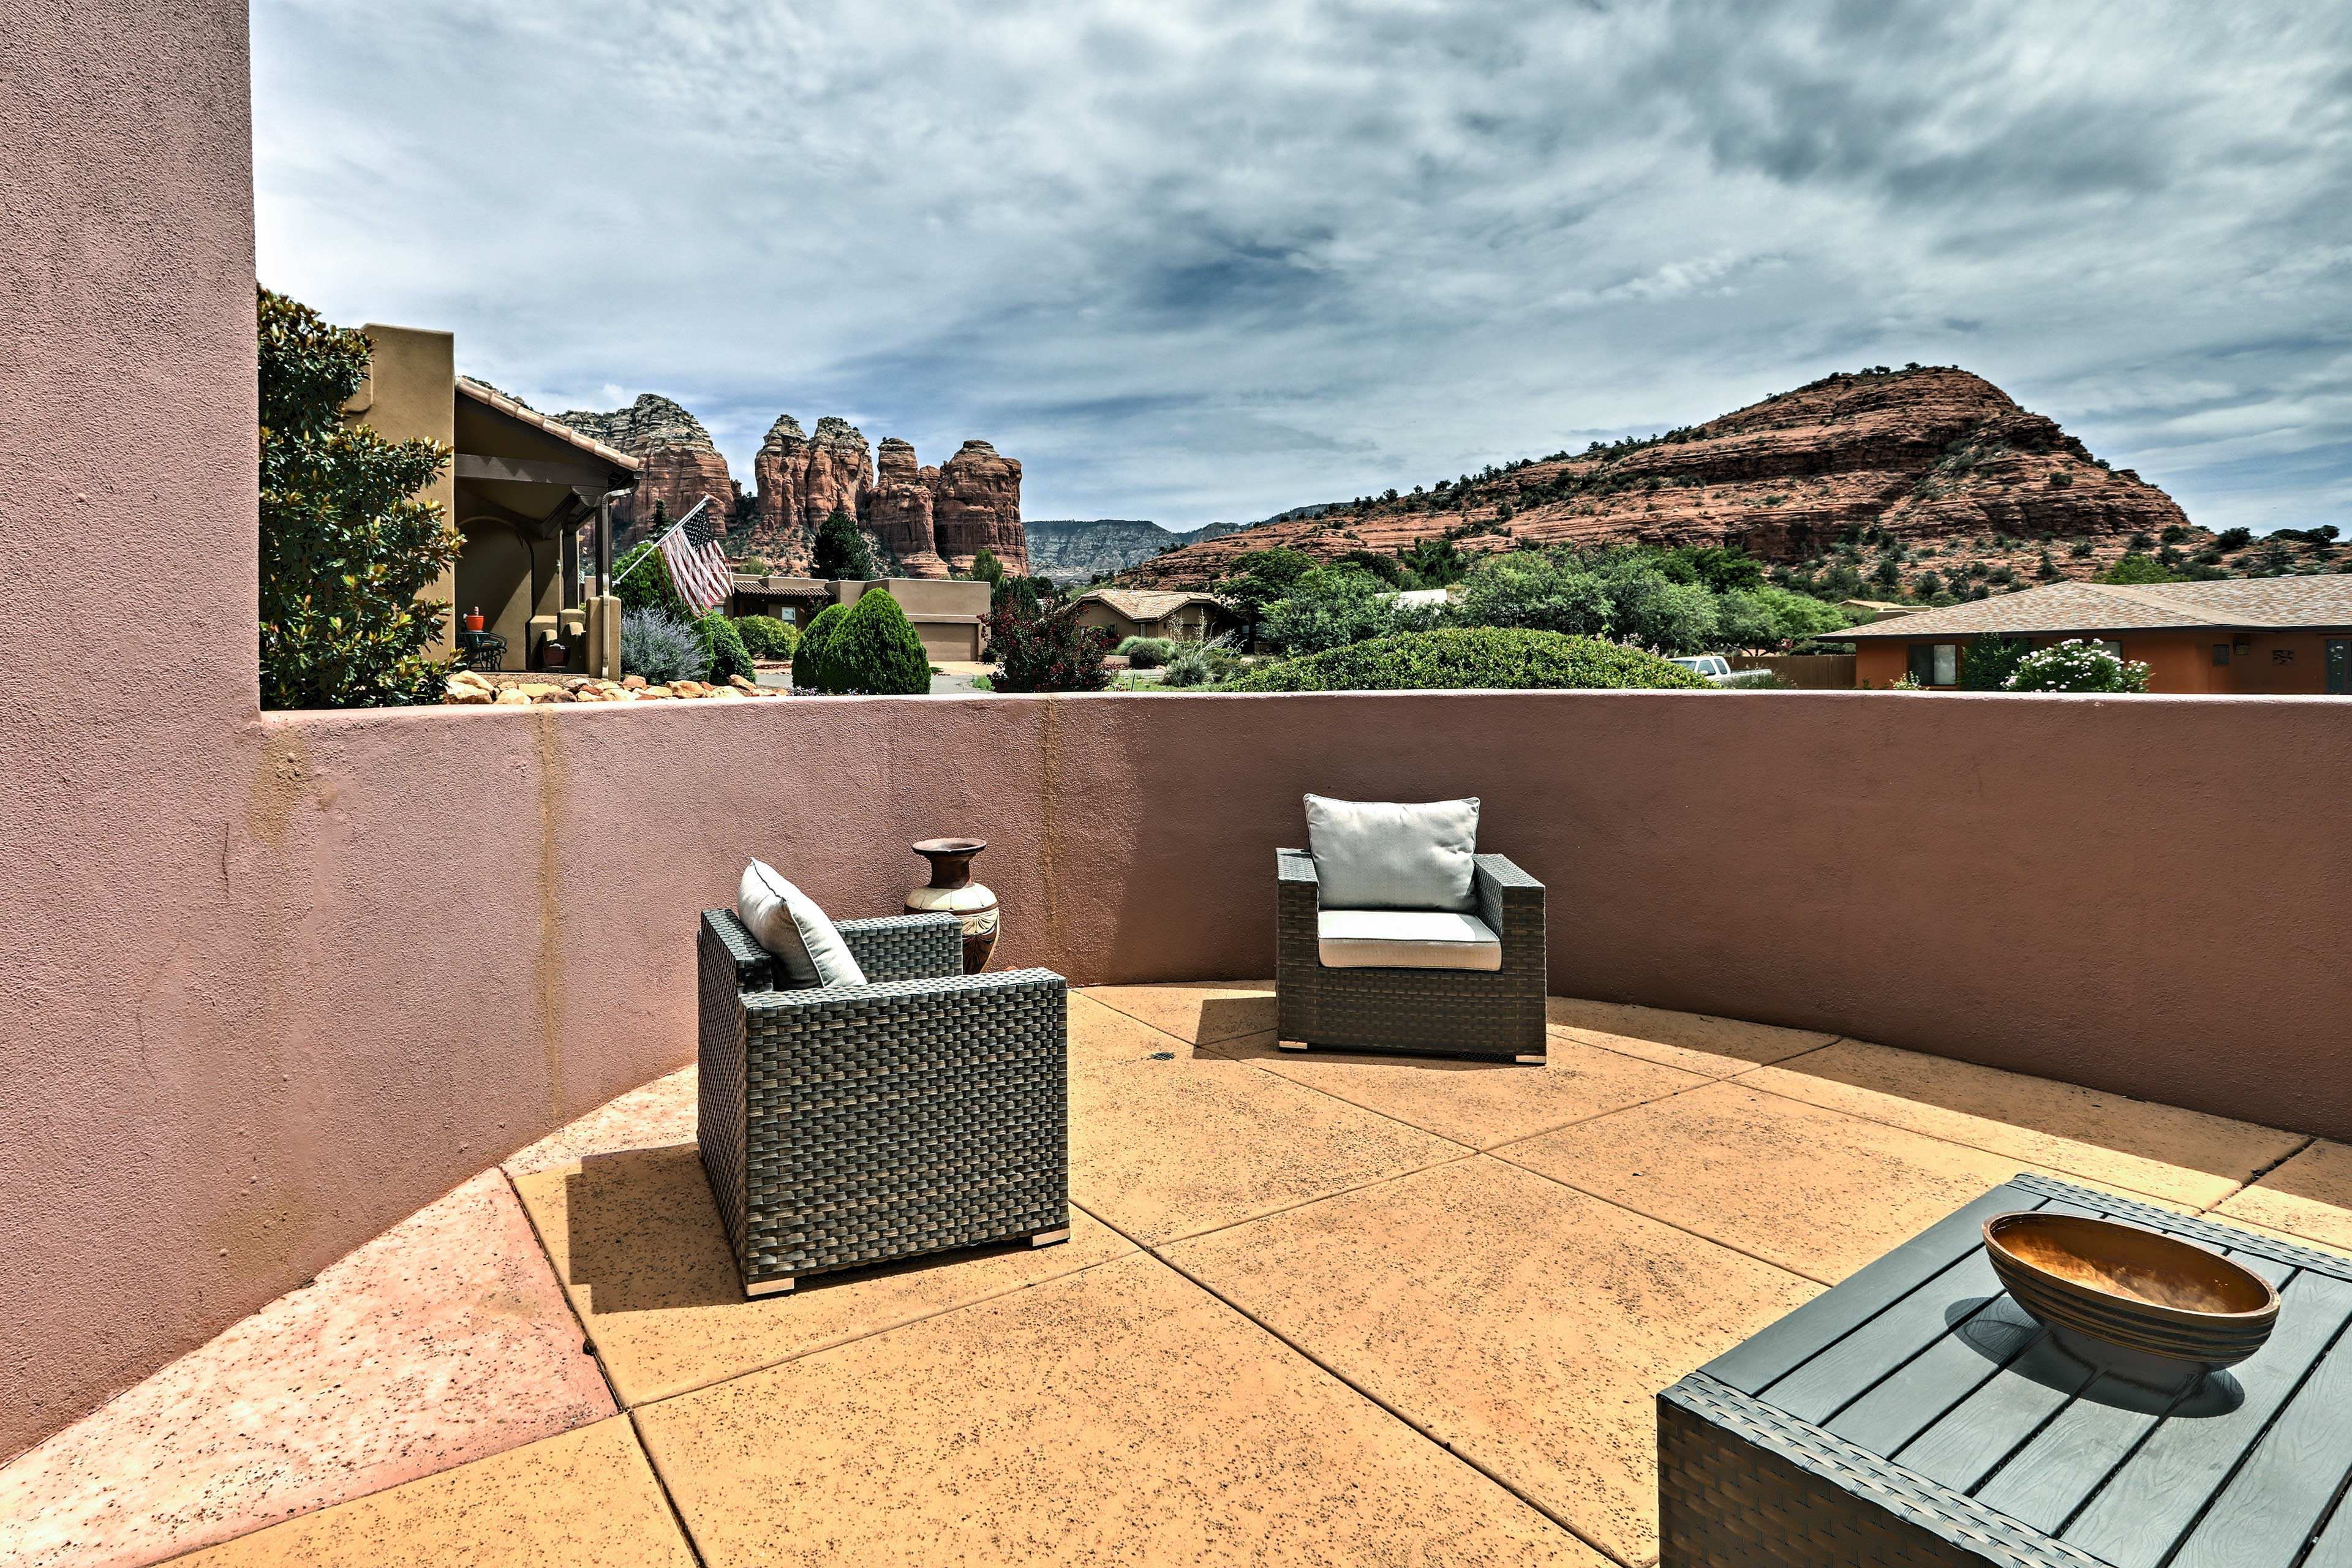 Admire the surrounding scenery from this furnished outdoor space.